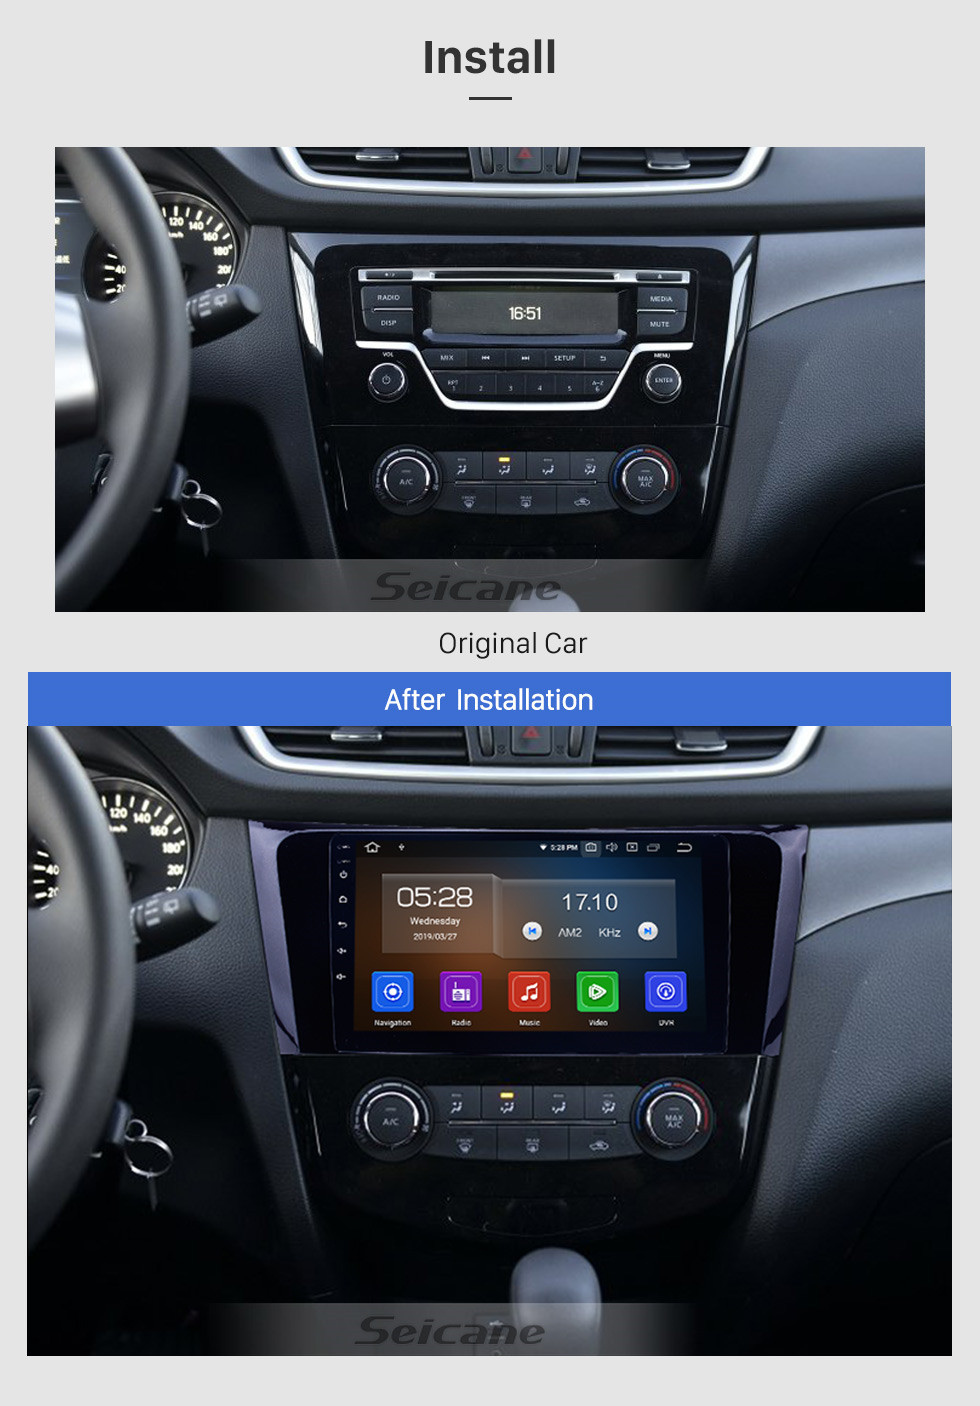 Seicane 9 inch For 2012-2017 NEW Nissan X-TRAIL Qashqai Android 10.0 HD touchscreen Radio GPS navigation system Support Steering Wheel 3G/4G WiFi Control Bluetooth OBD2